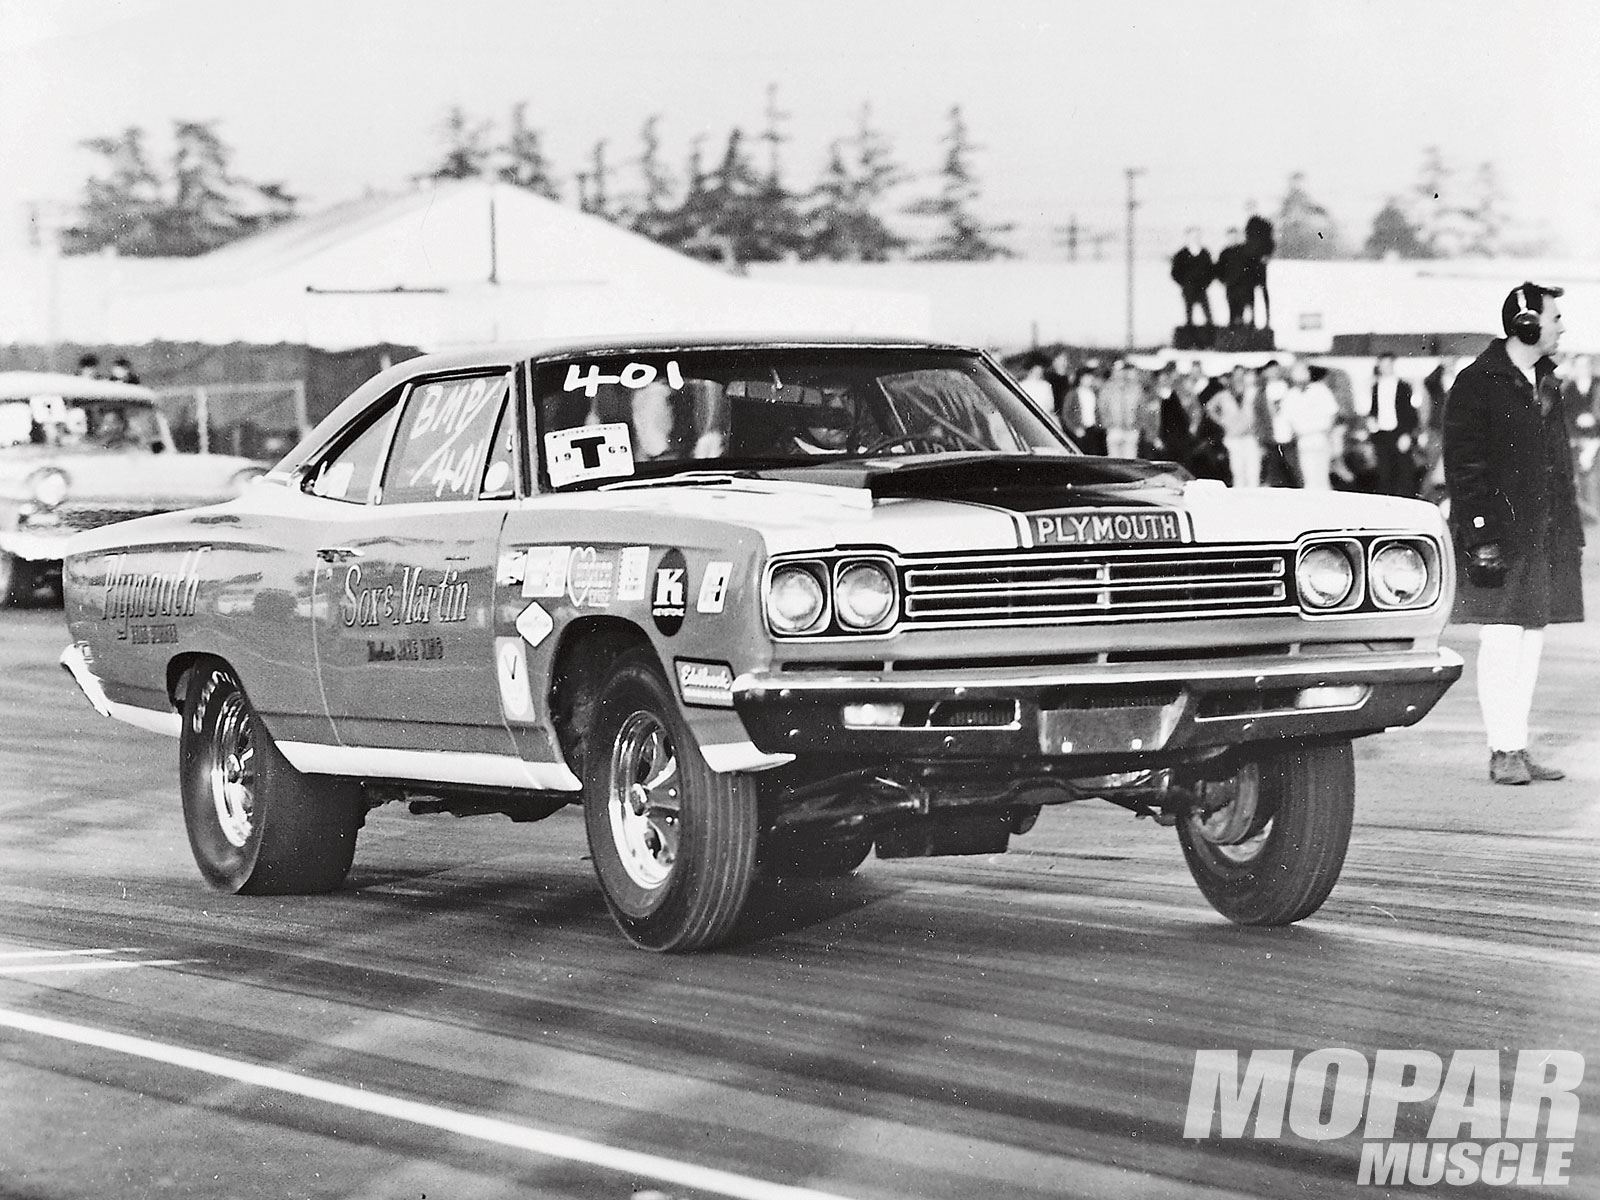 Plymouth road runner drag racing race muscle hot rod rods h wallpaper